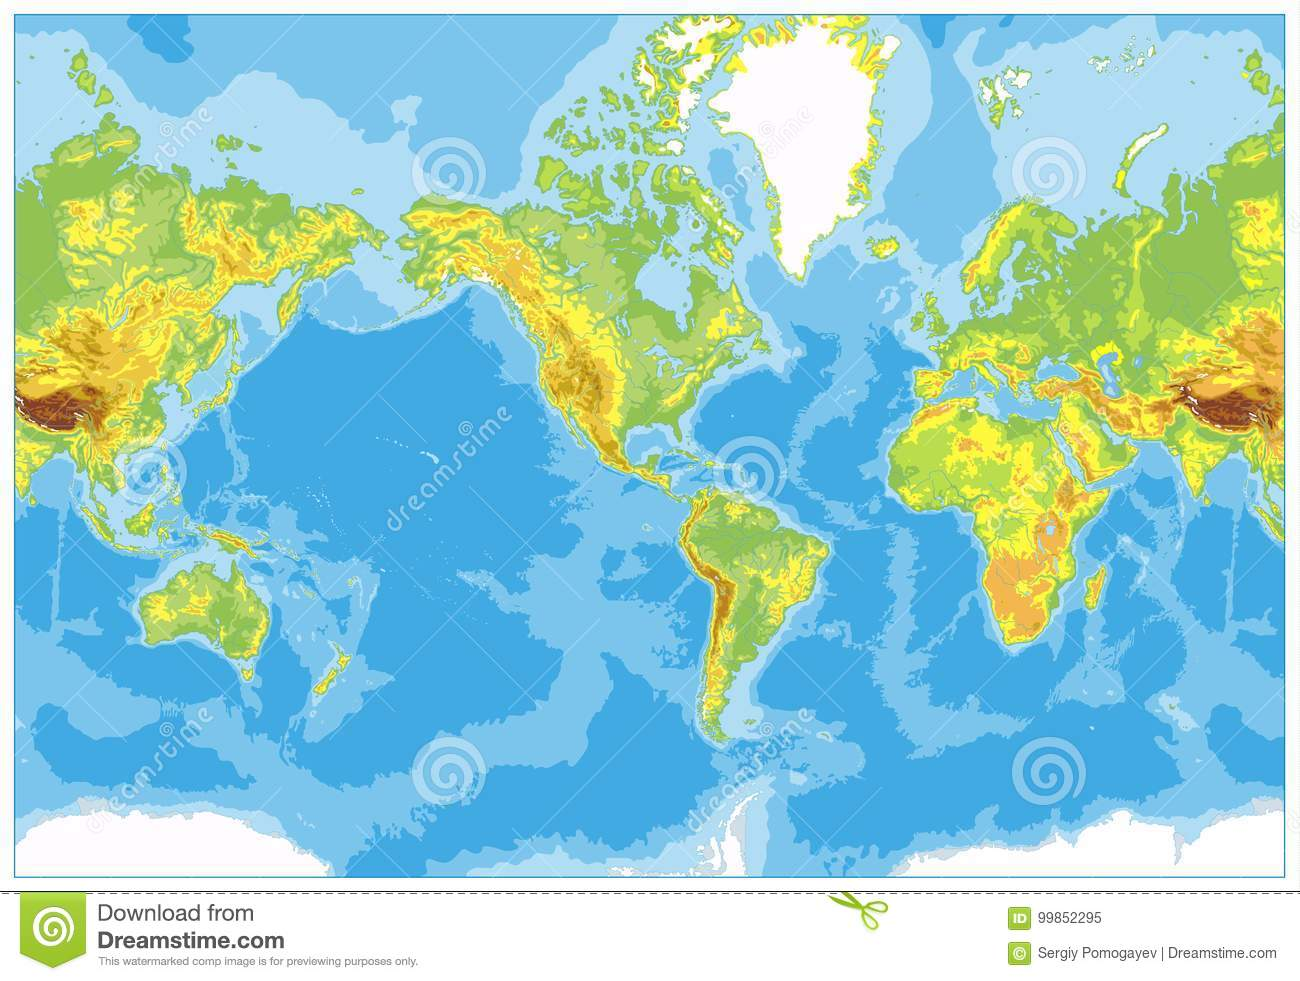 Map Of The World No Borders.America Centered Physical World Map No Text And Borders Stock